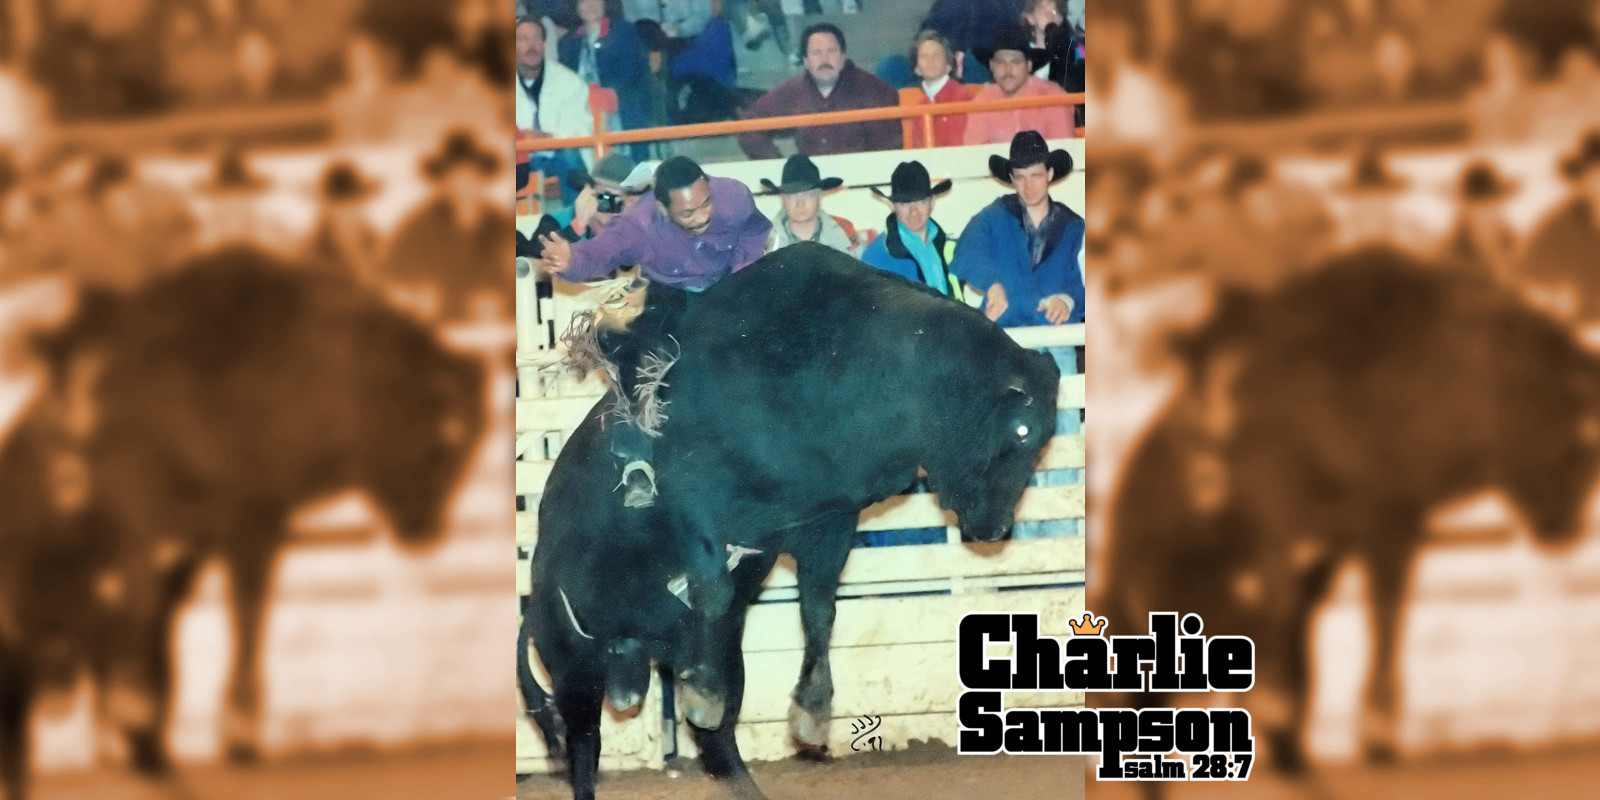 Charlie Sampson 1991 Short Round Denver Colorado Number 66 of Benny Butler with Brent Therman 1998 Saddle Bronc Rider Tommy Reves and 93 94 NFR Qualifier